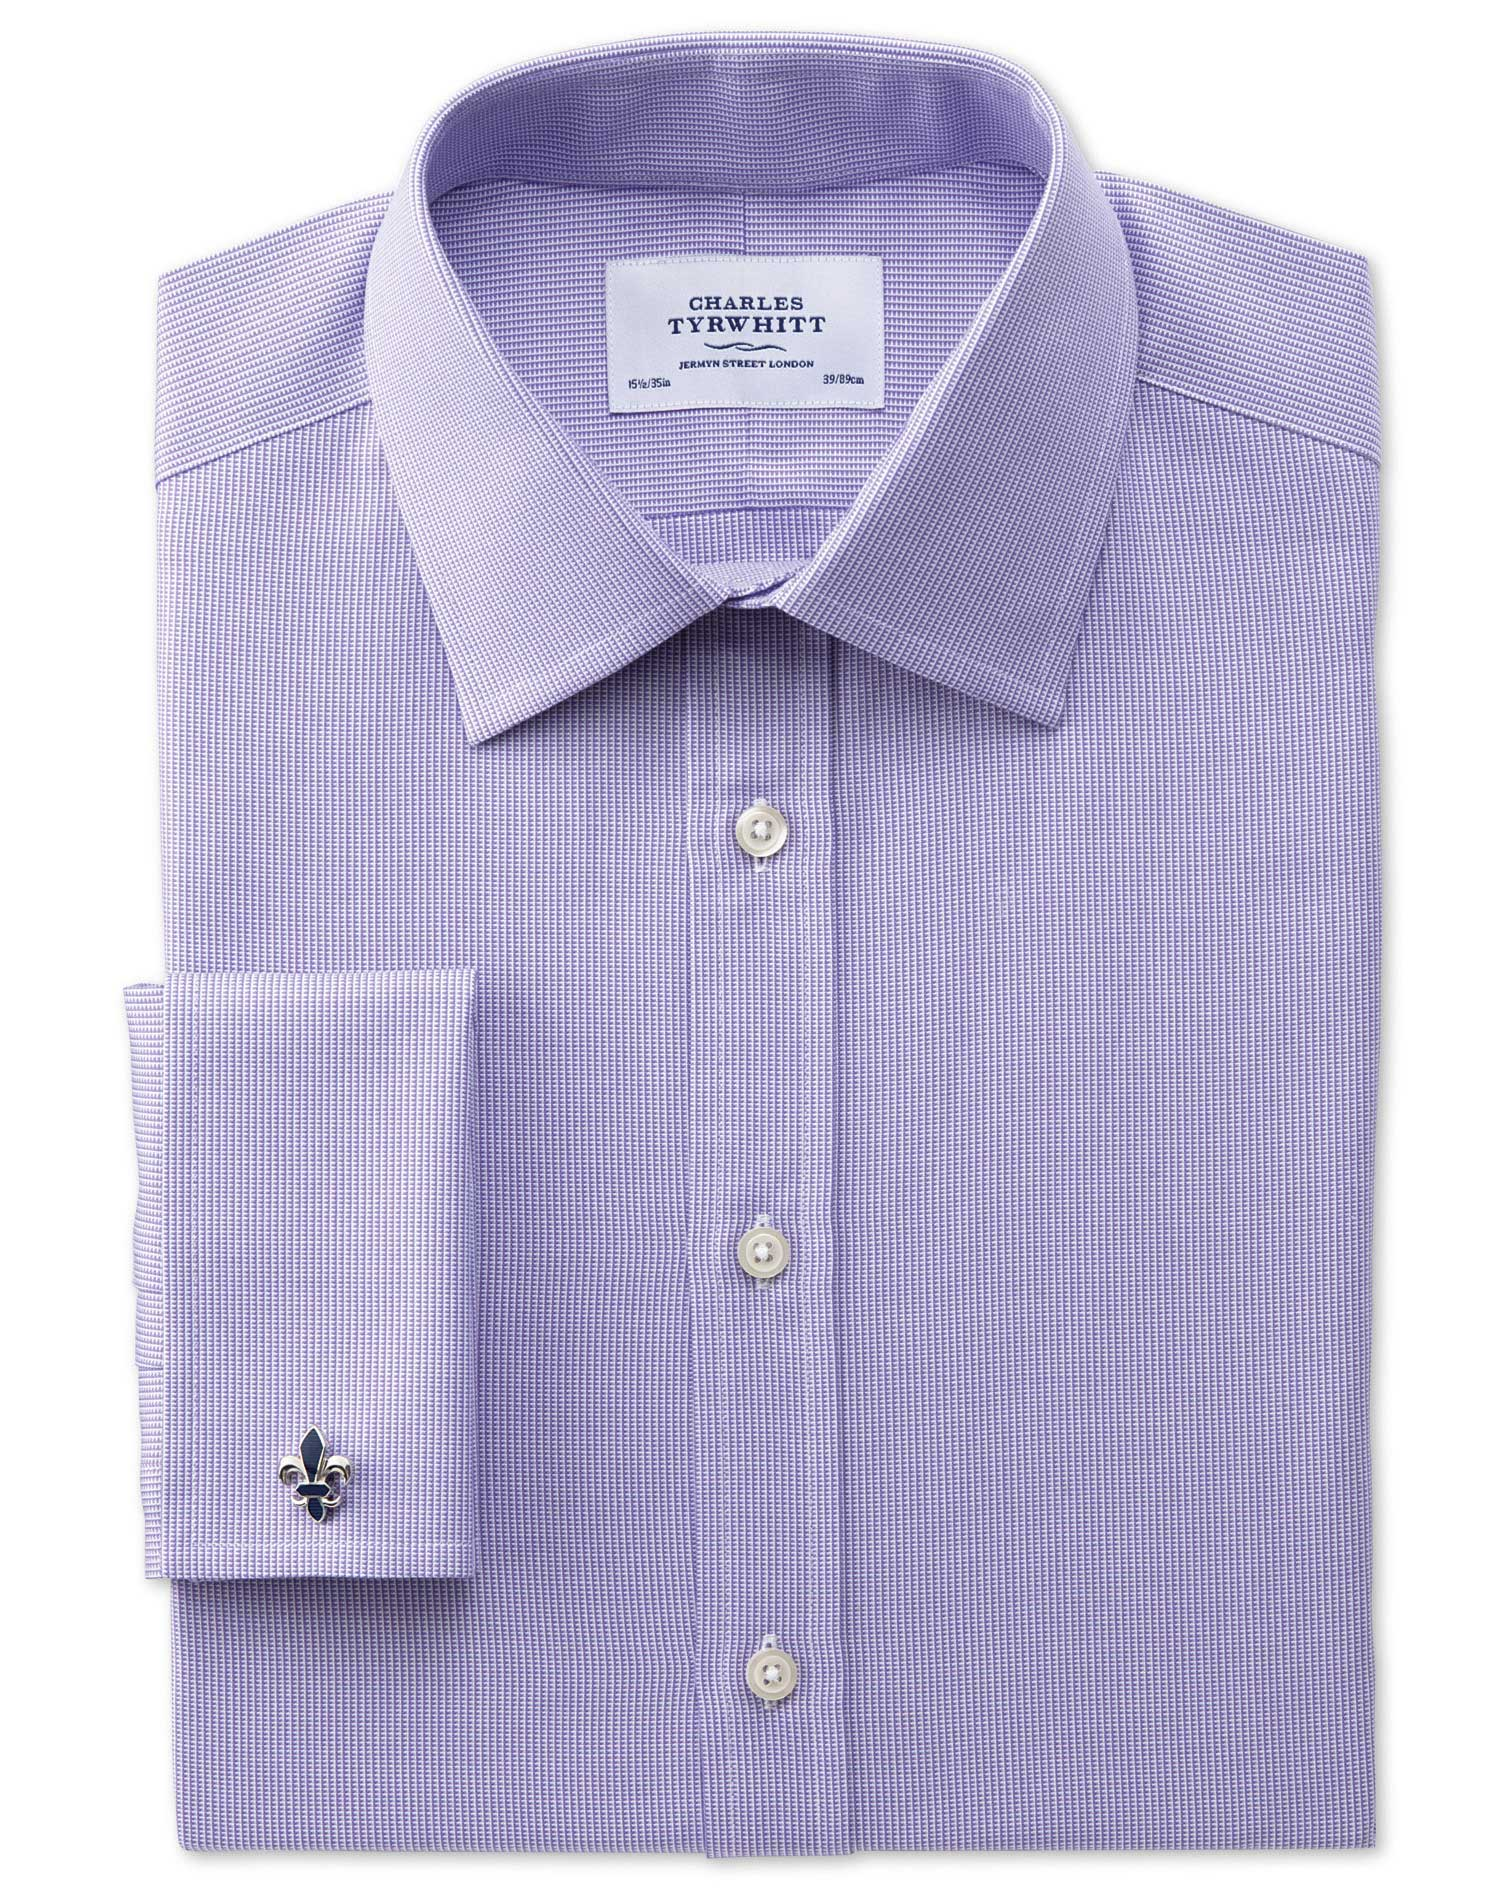 Slim Fit Oxford Lilac Cotton Formal Shirt Double Cuff Size 17.5/38 by Charles Tyrwhitt